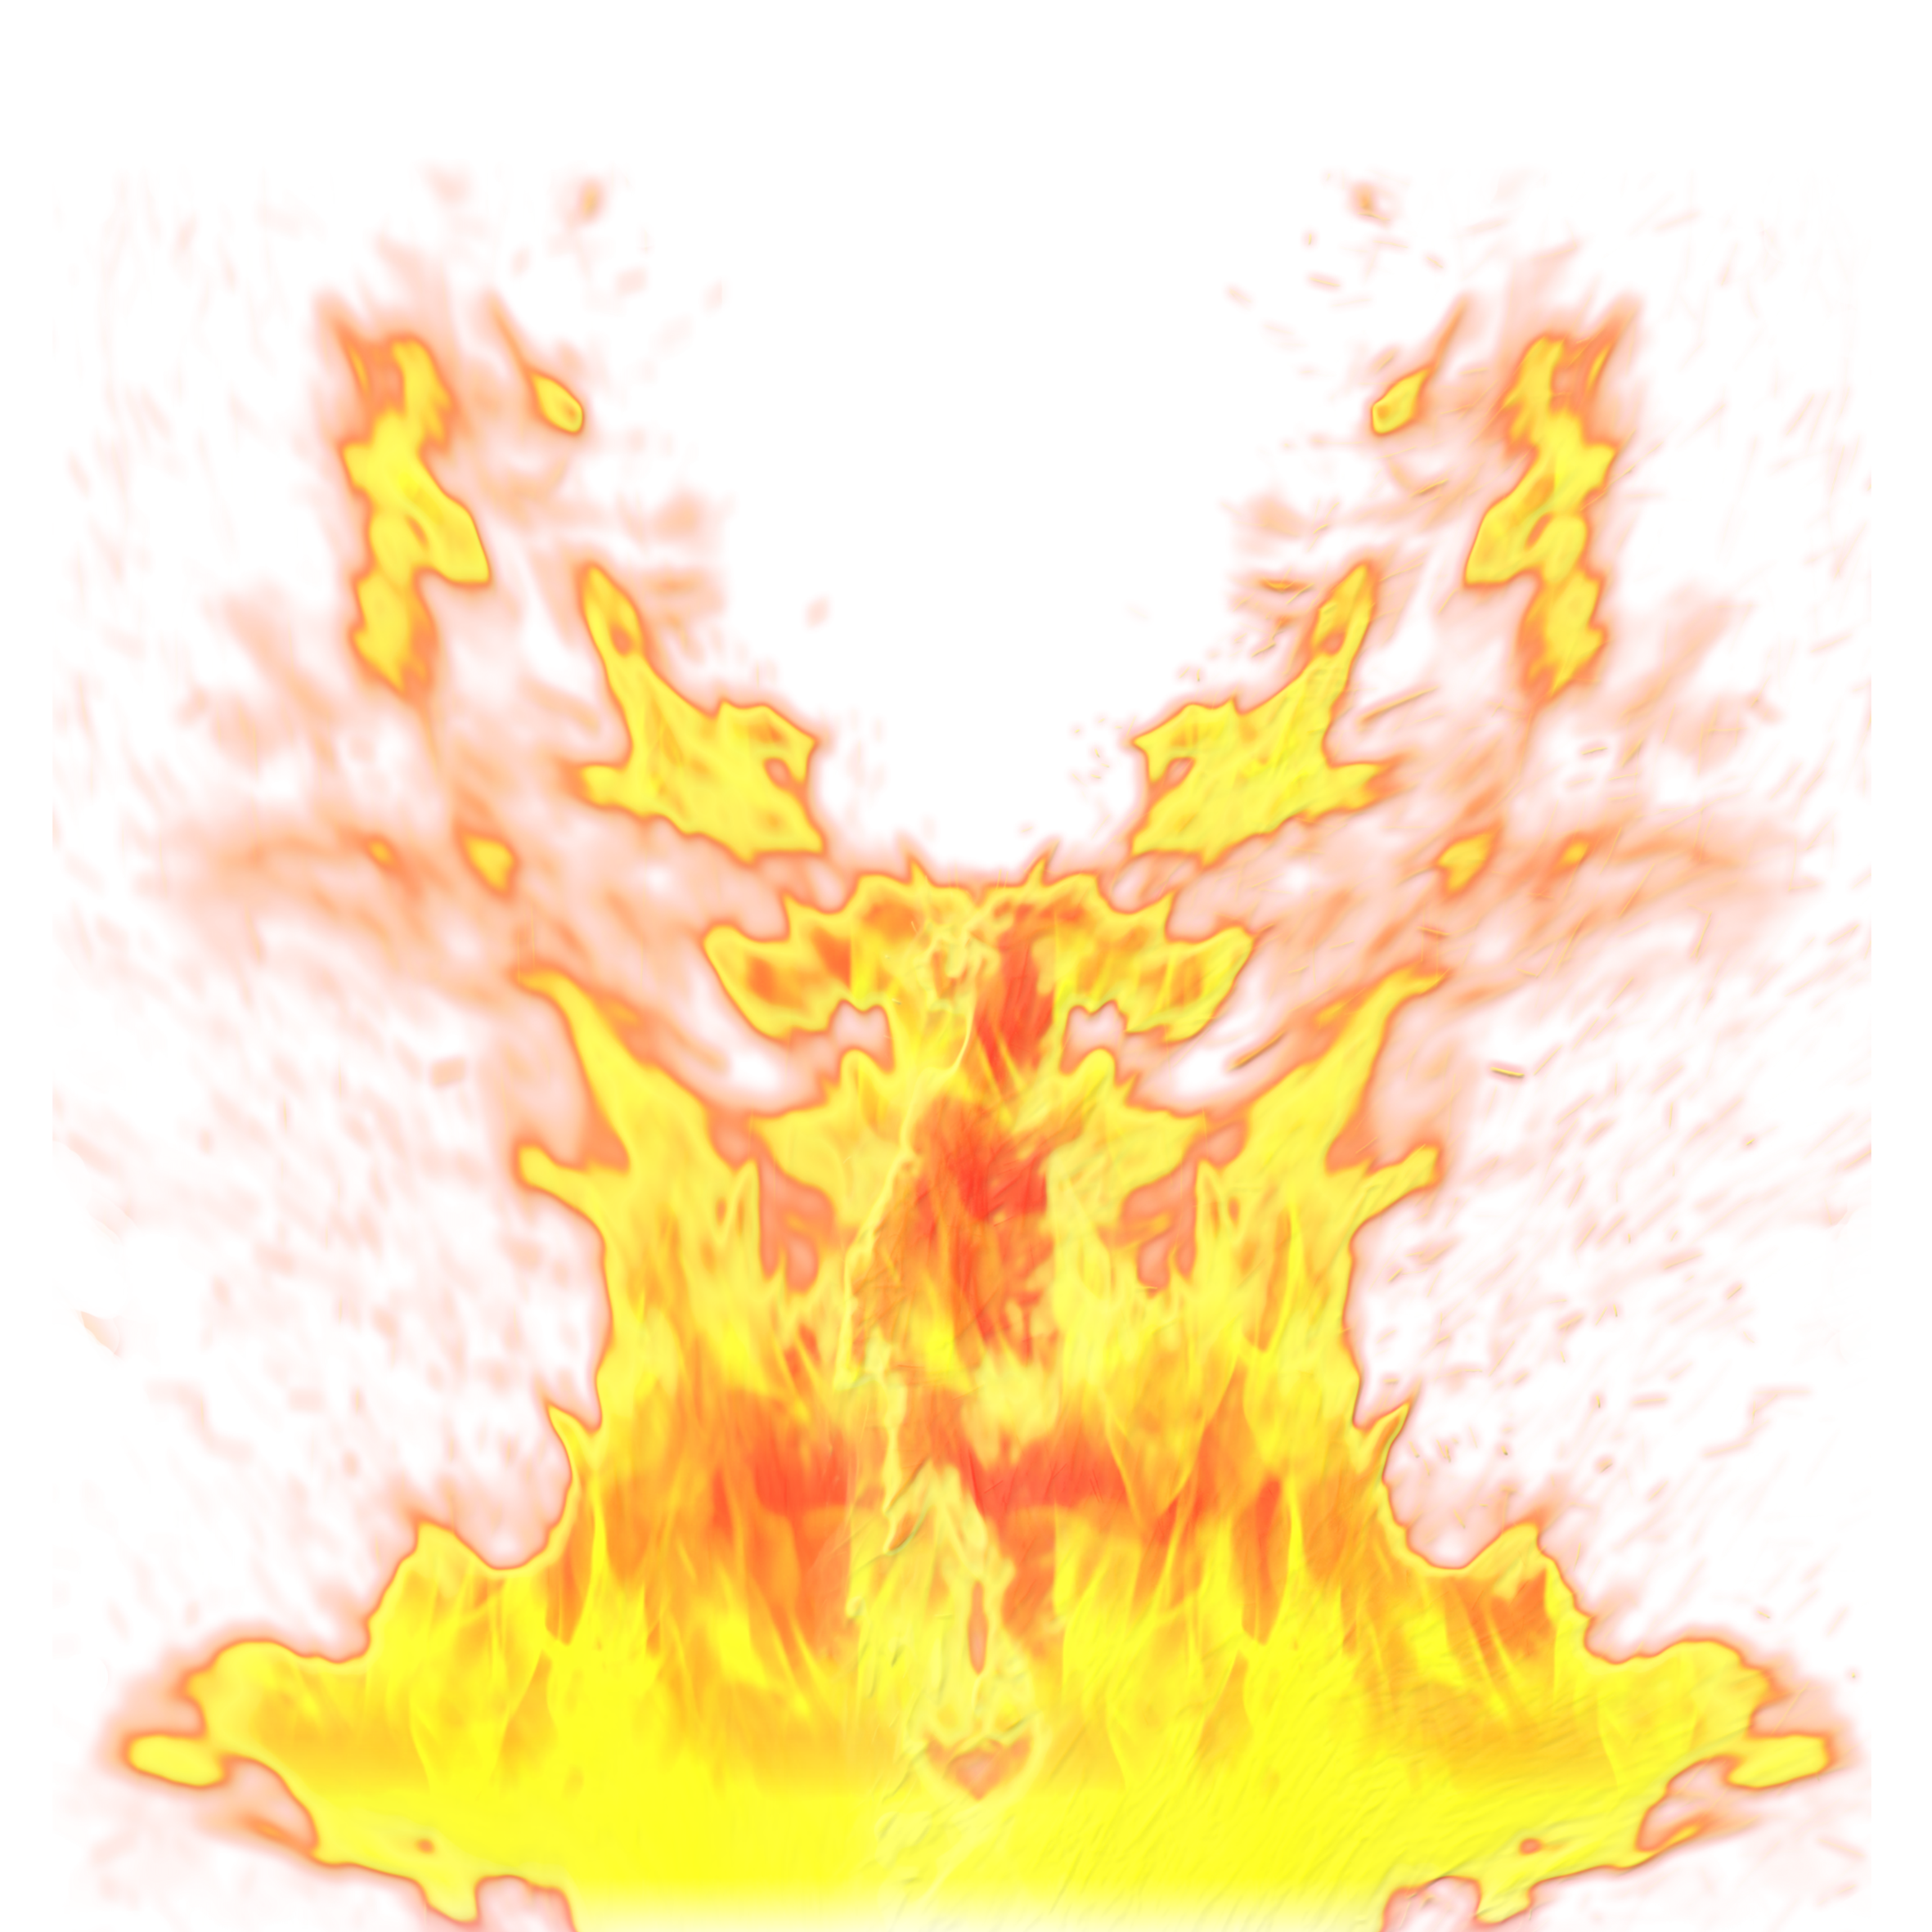 Fire image purepng transparent. Png pictures free download freeuse download